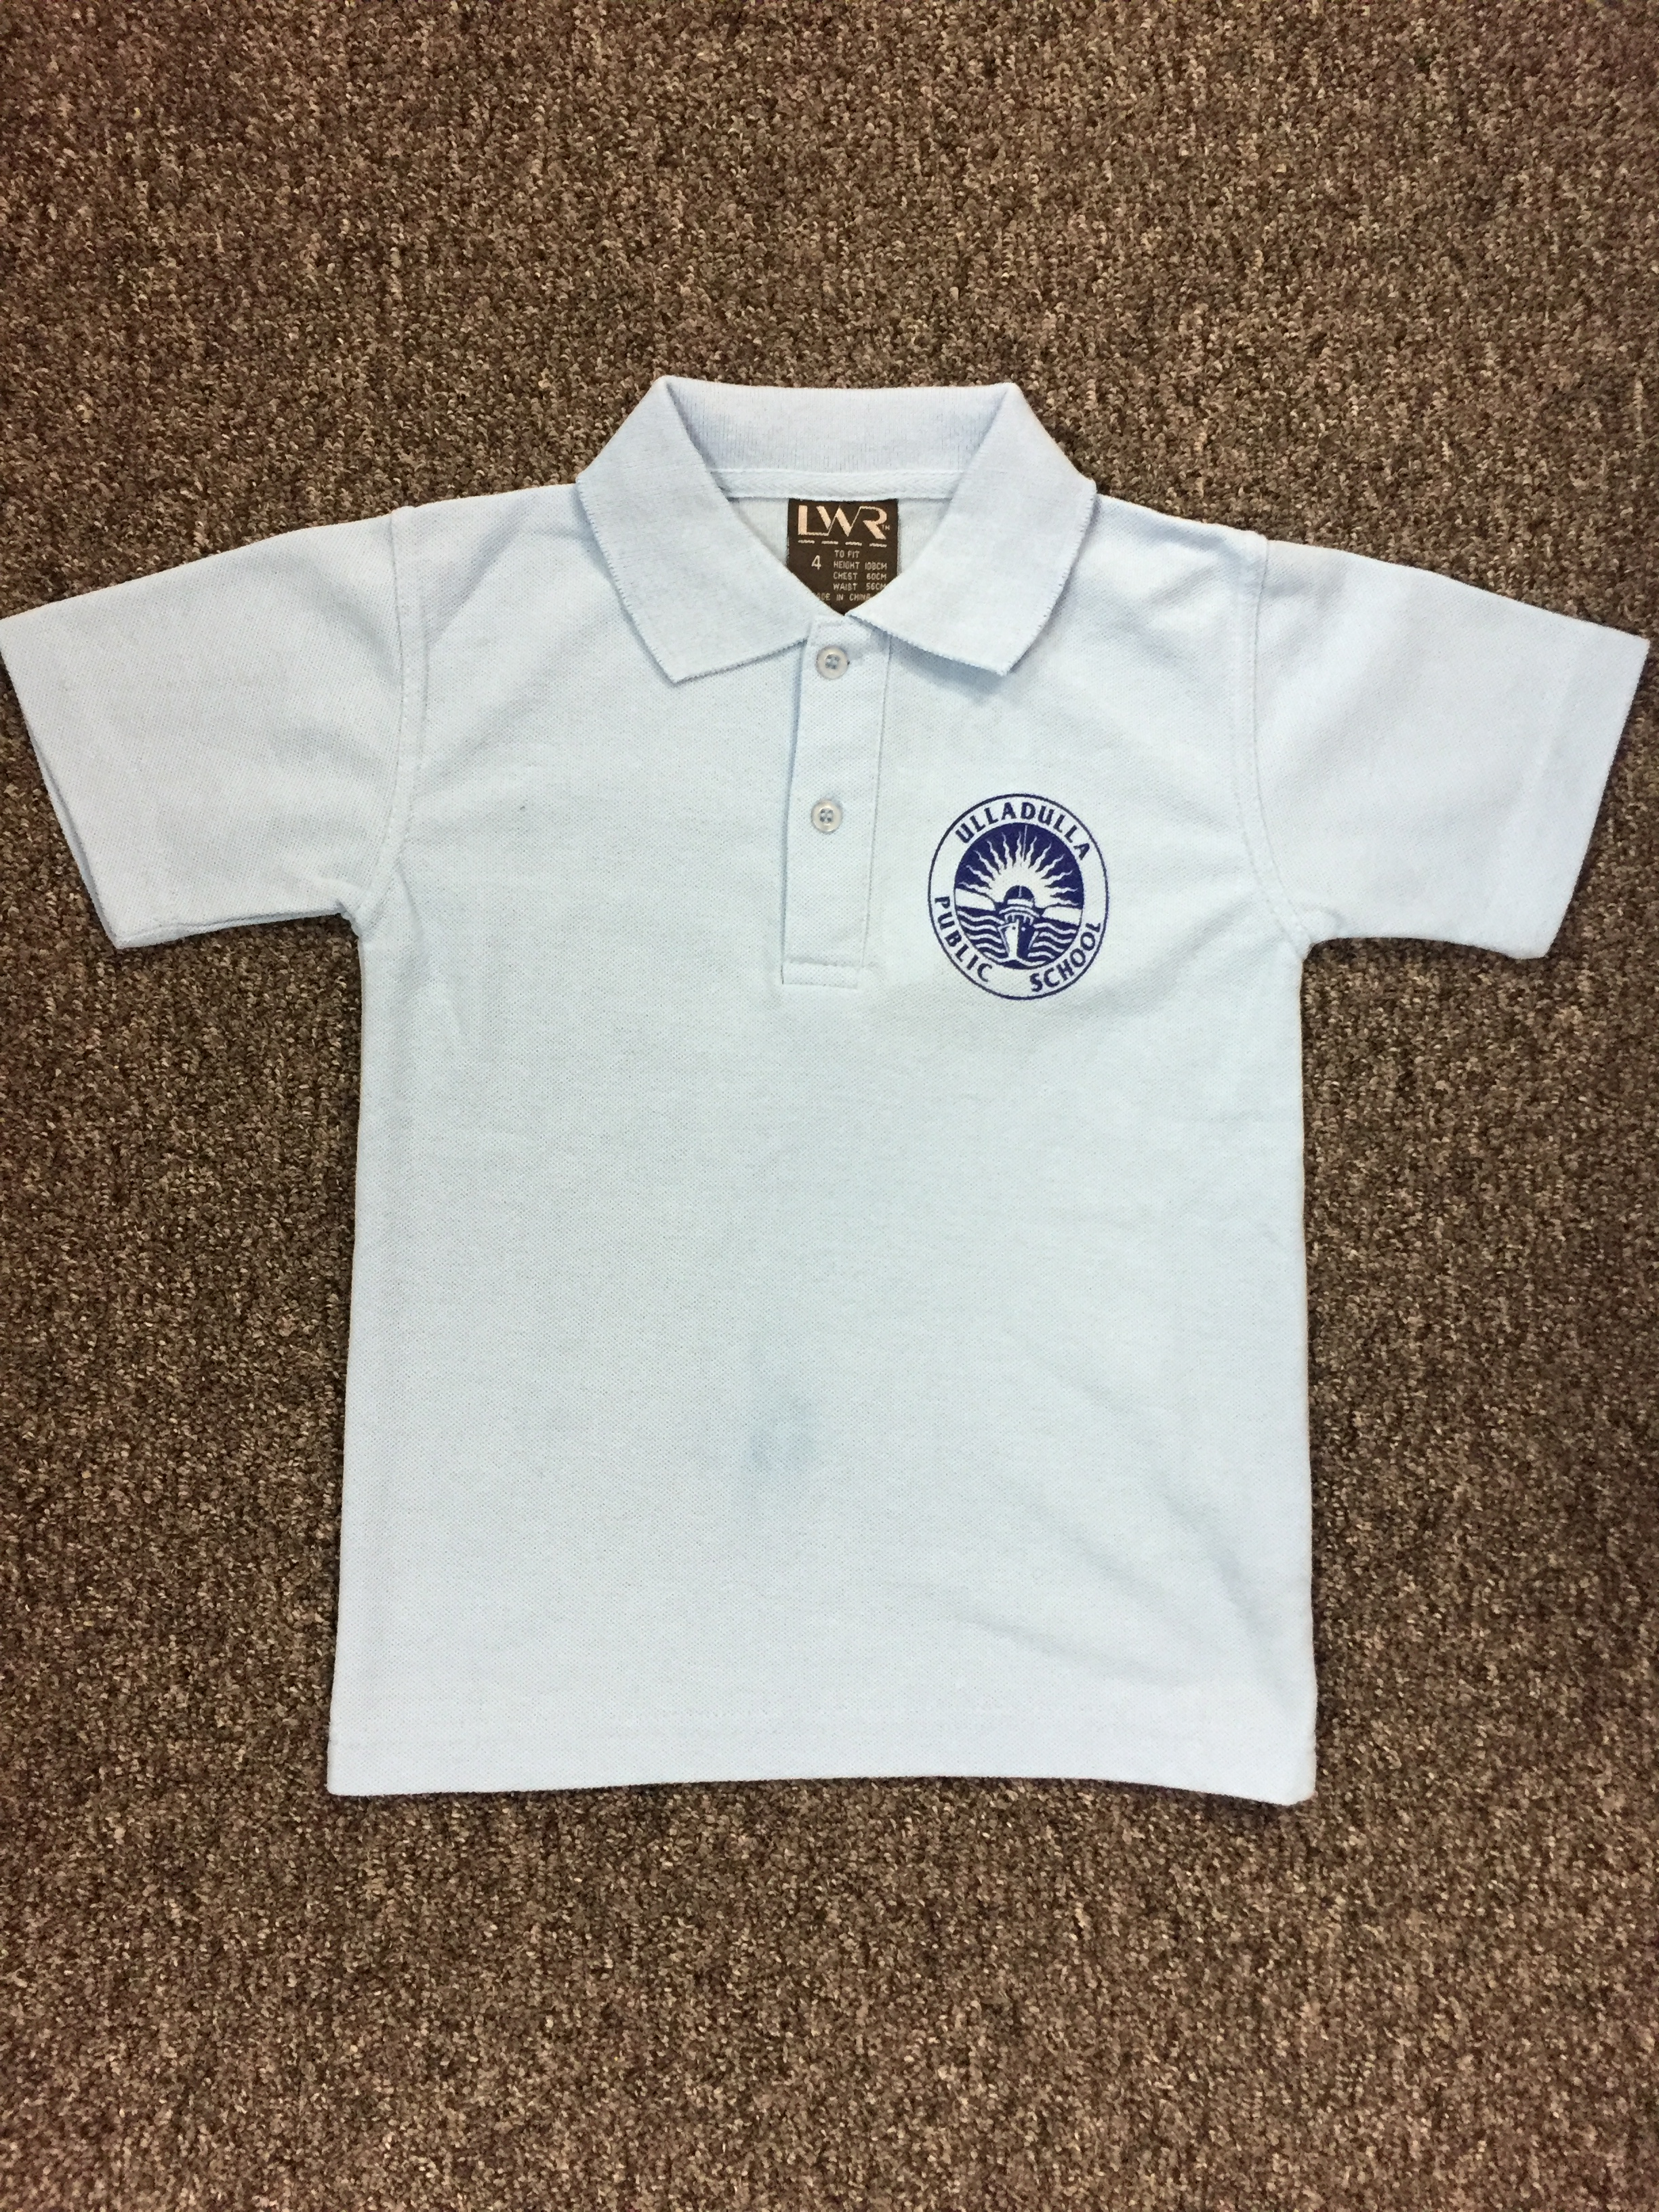 LWR unisex sky blue  polo shirt